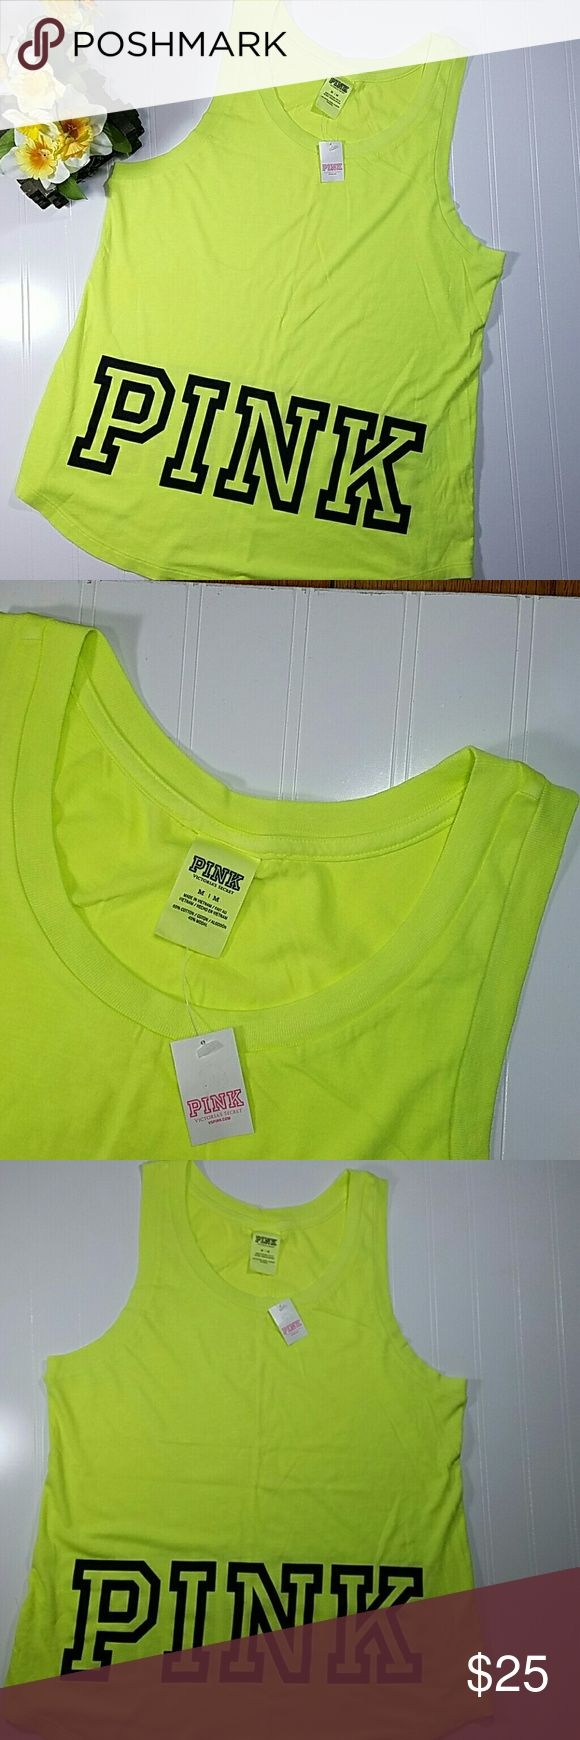 ✳ Victoria Secret Pink tank top Neon yellow racer back tank top, longer style, the word PINK on the front and back. Cotton/modal. NWT. Sz medium PINK Victoria's Secret Tops Tank Tops